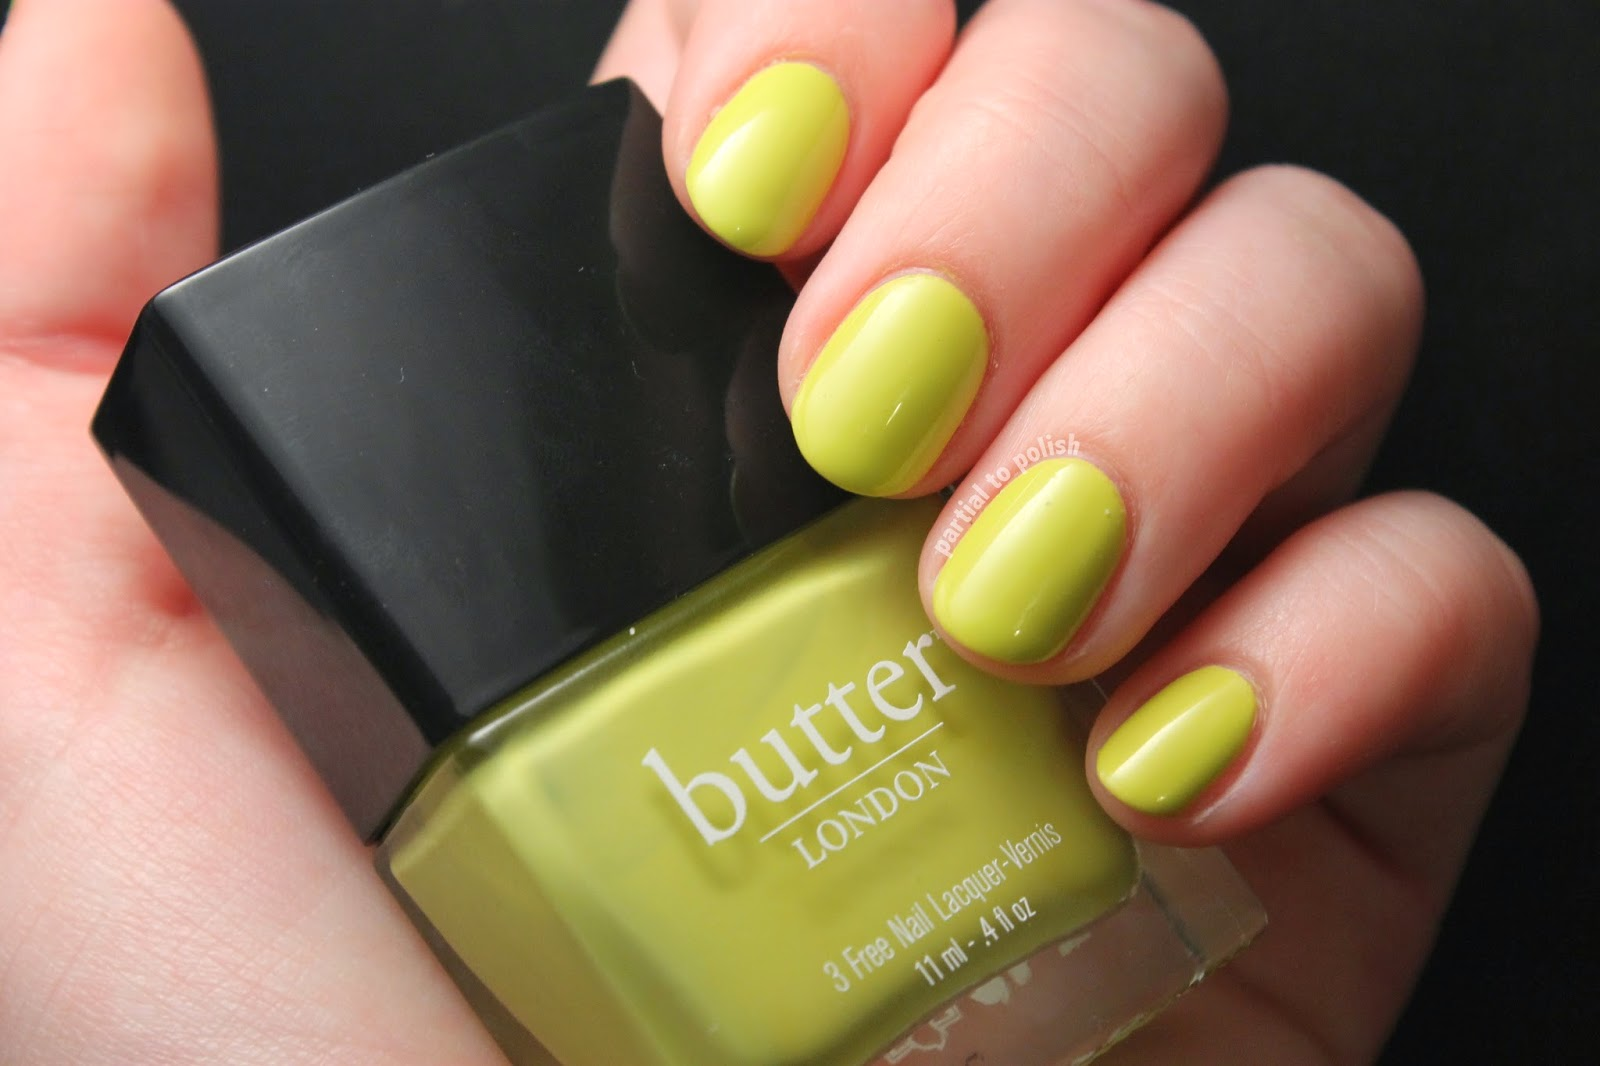 Butter London Wellies